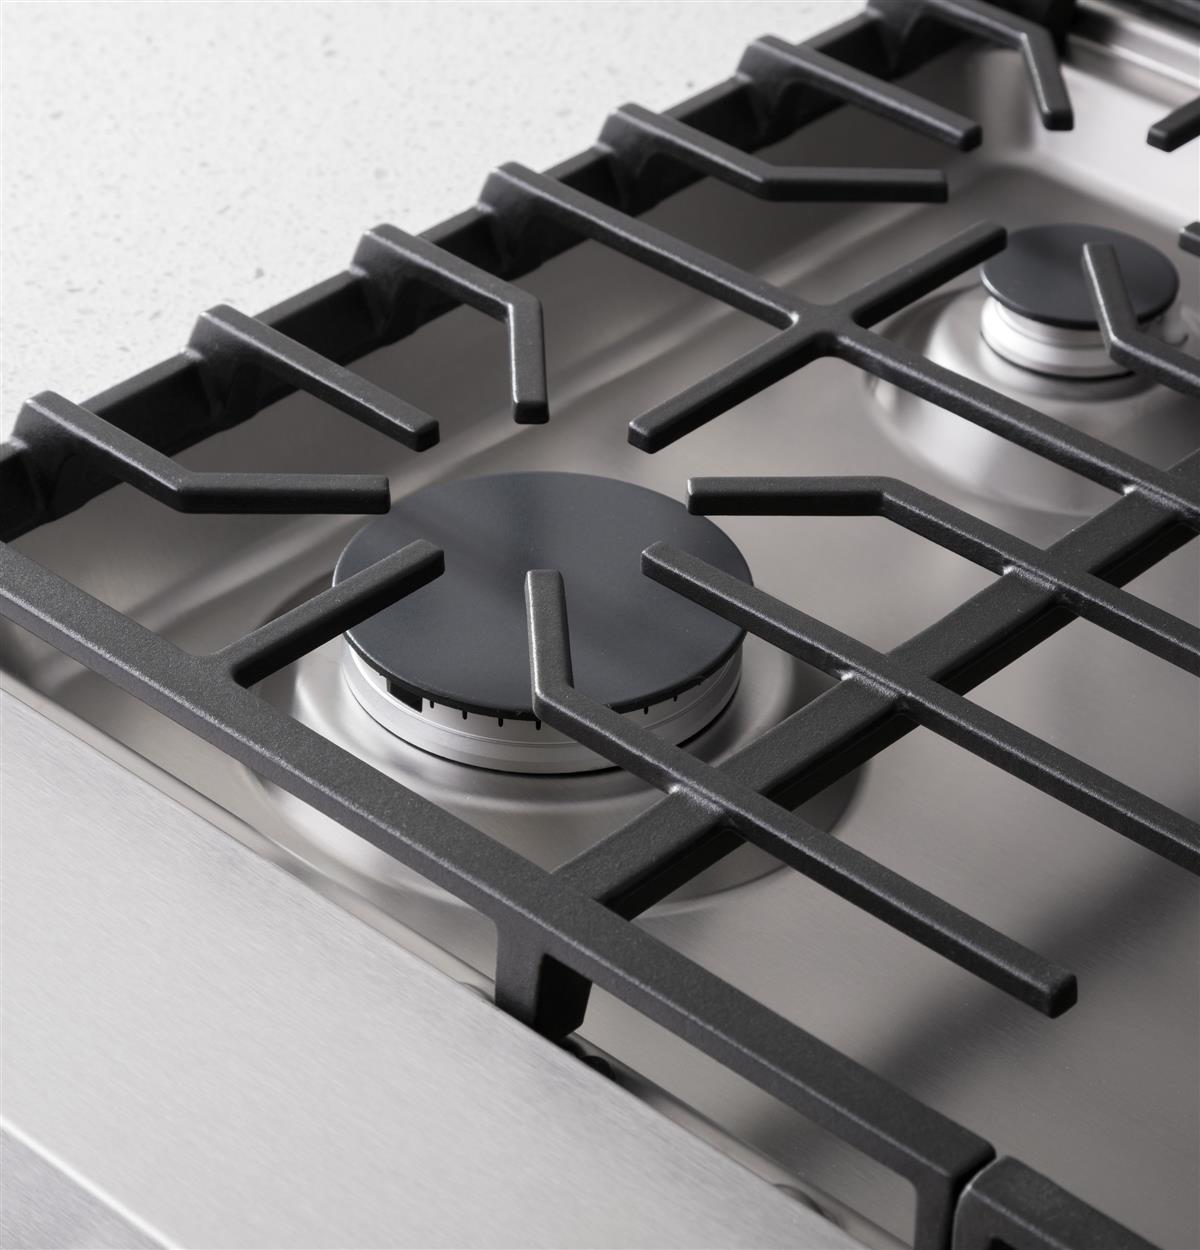 Go with your culinary flow. Continuous grates allow for easy movement of cookware, while providing even heat distribution with better heat retention.